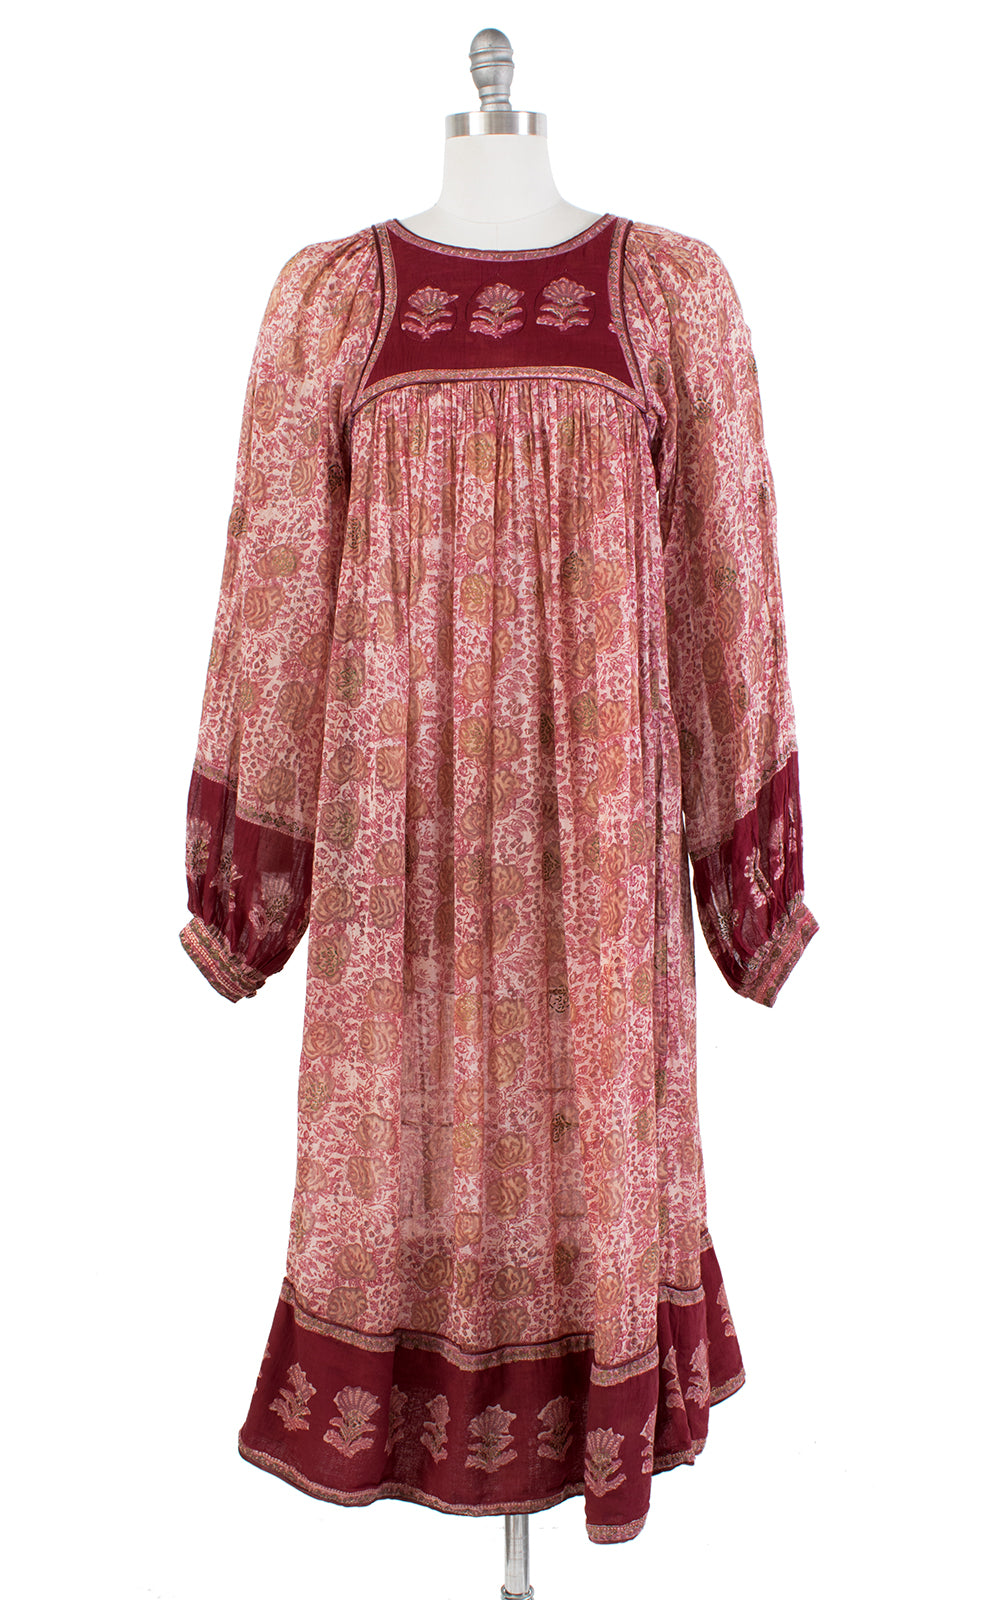 1970s Style Indian Cotton Floral Sheer Bohemian Dress